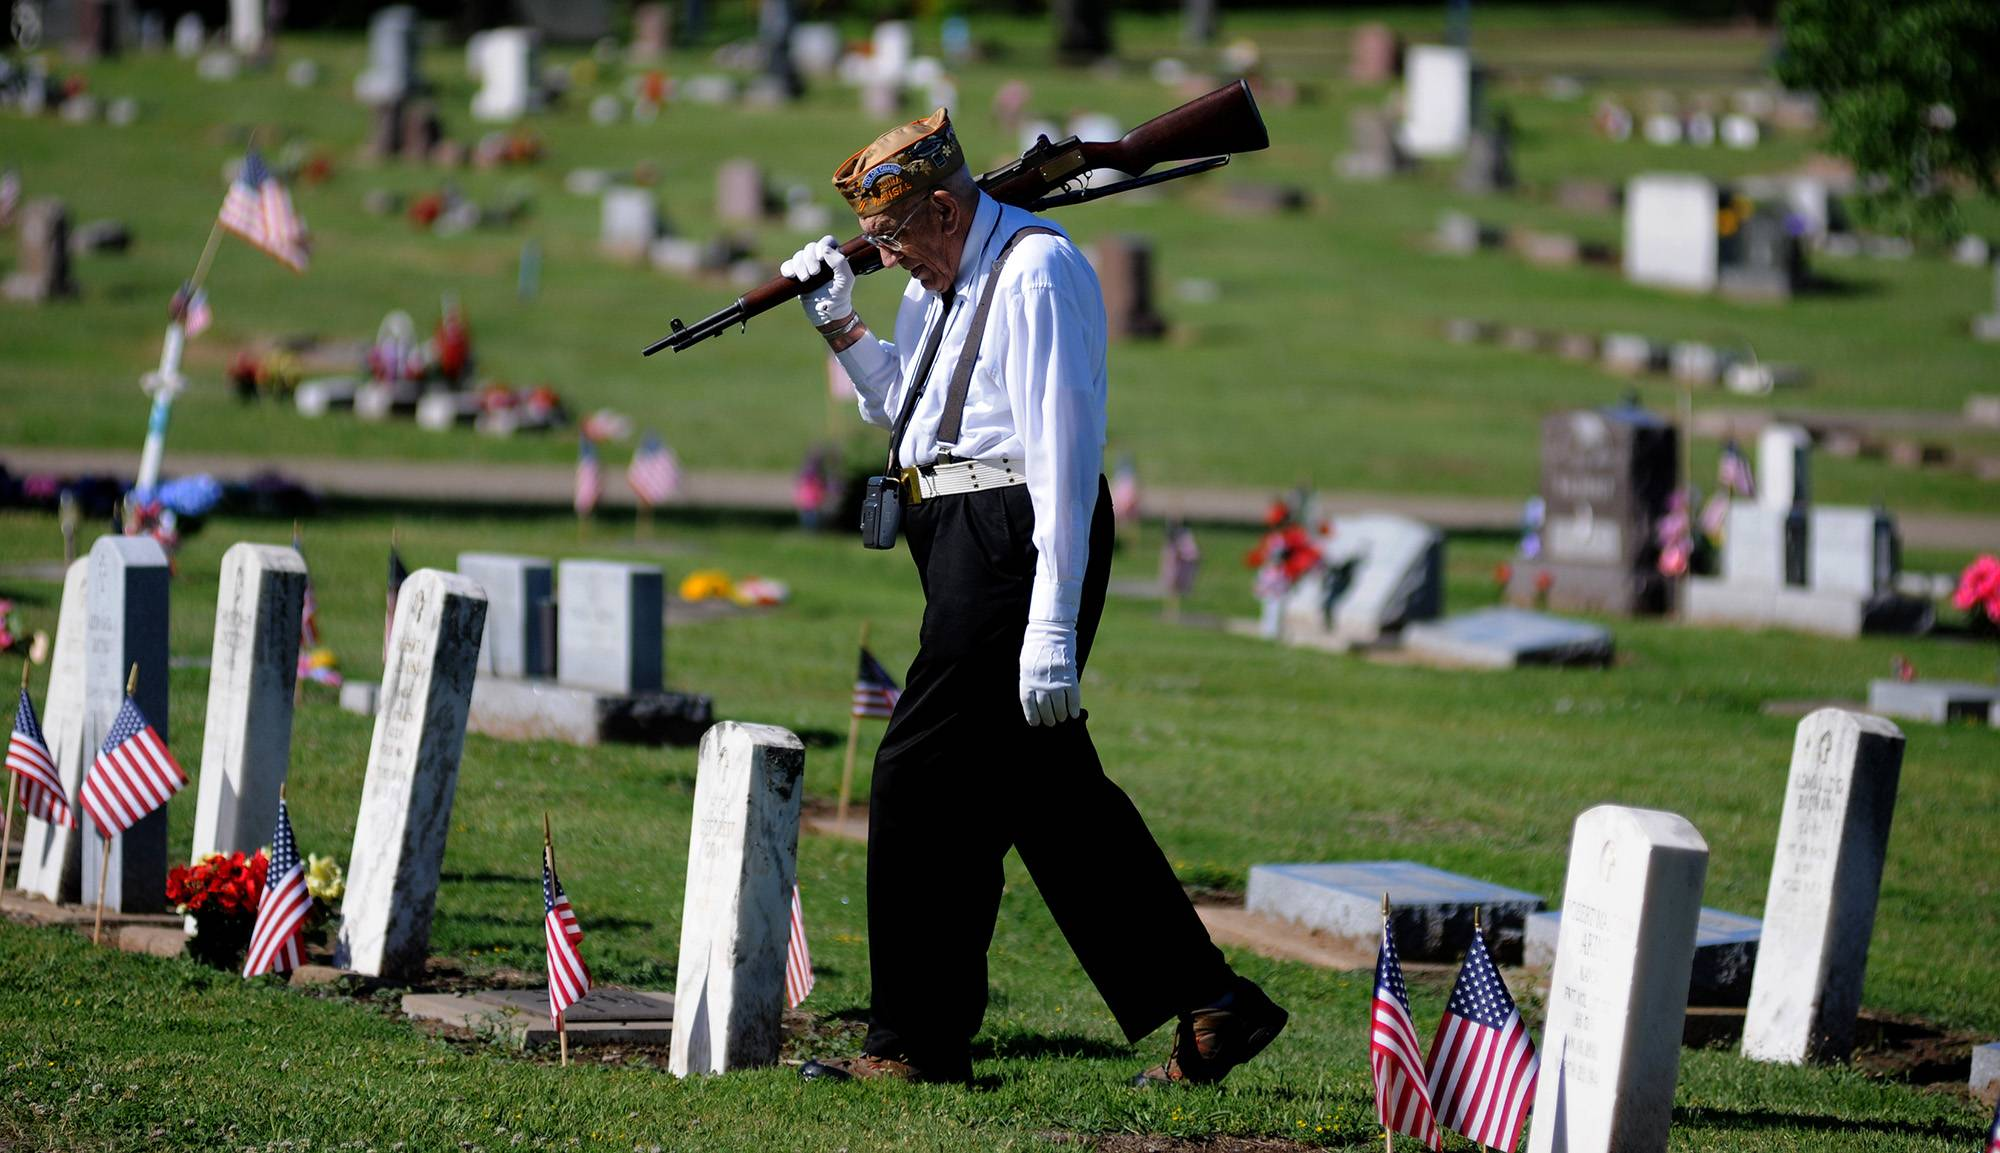 Images: Memorial Day across the country